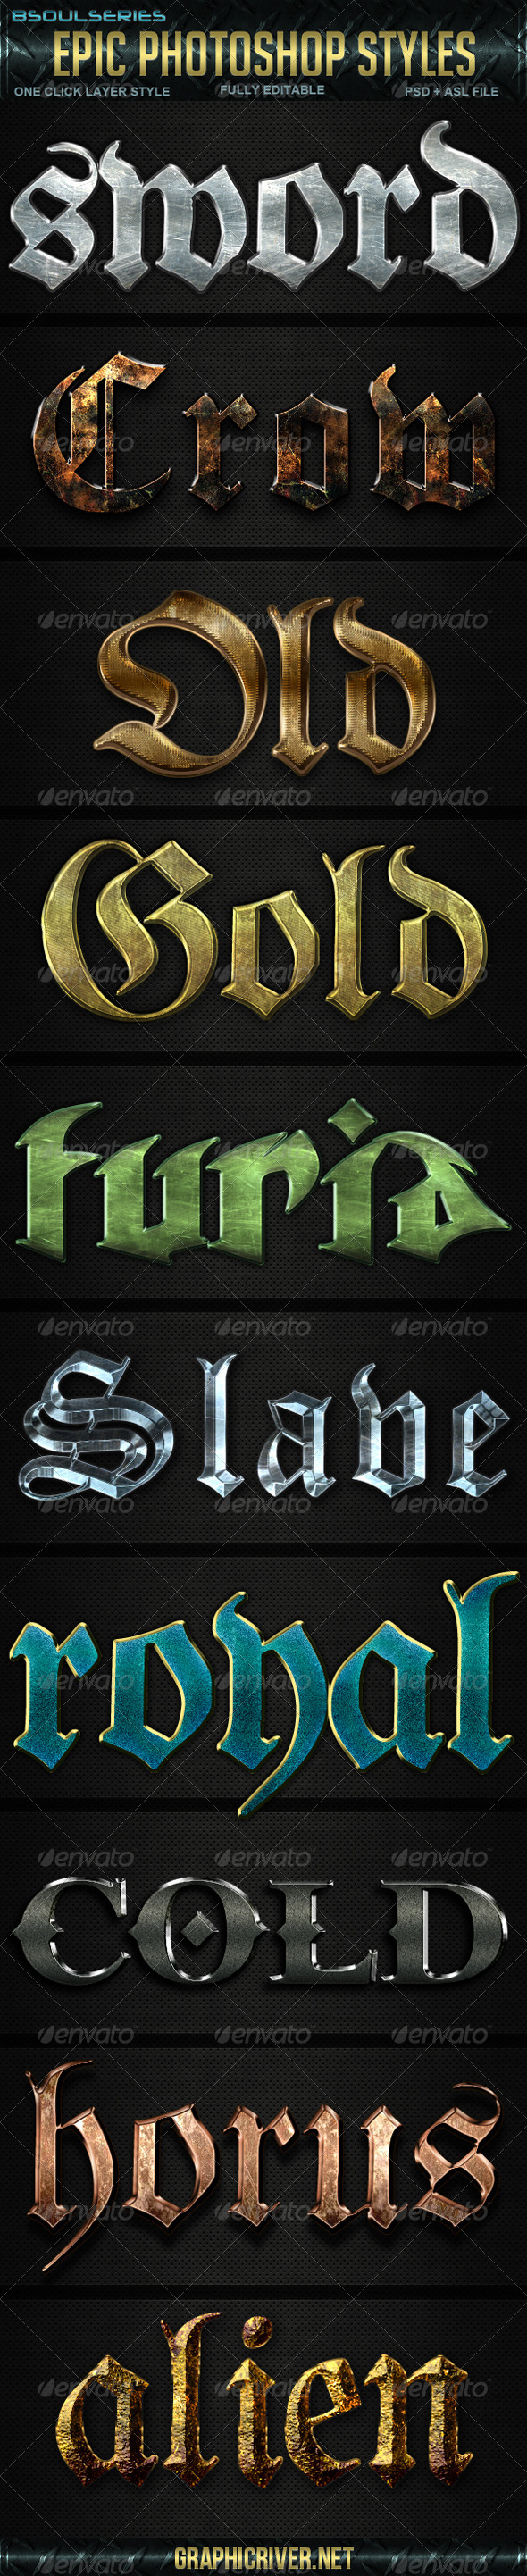 Epic Photoshop Styles - Text Effects Styles